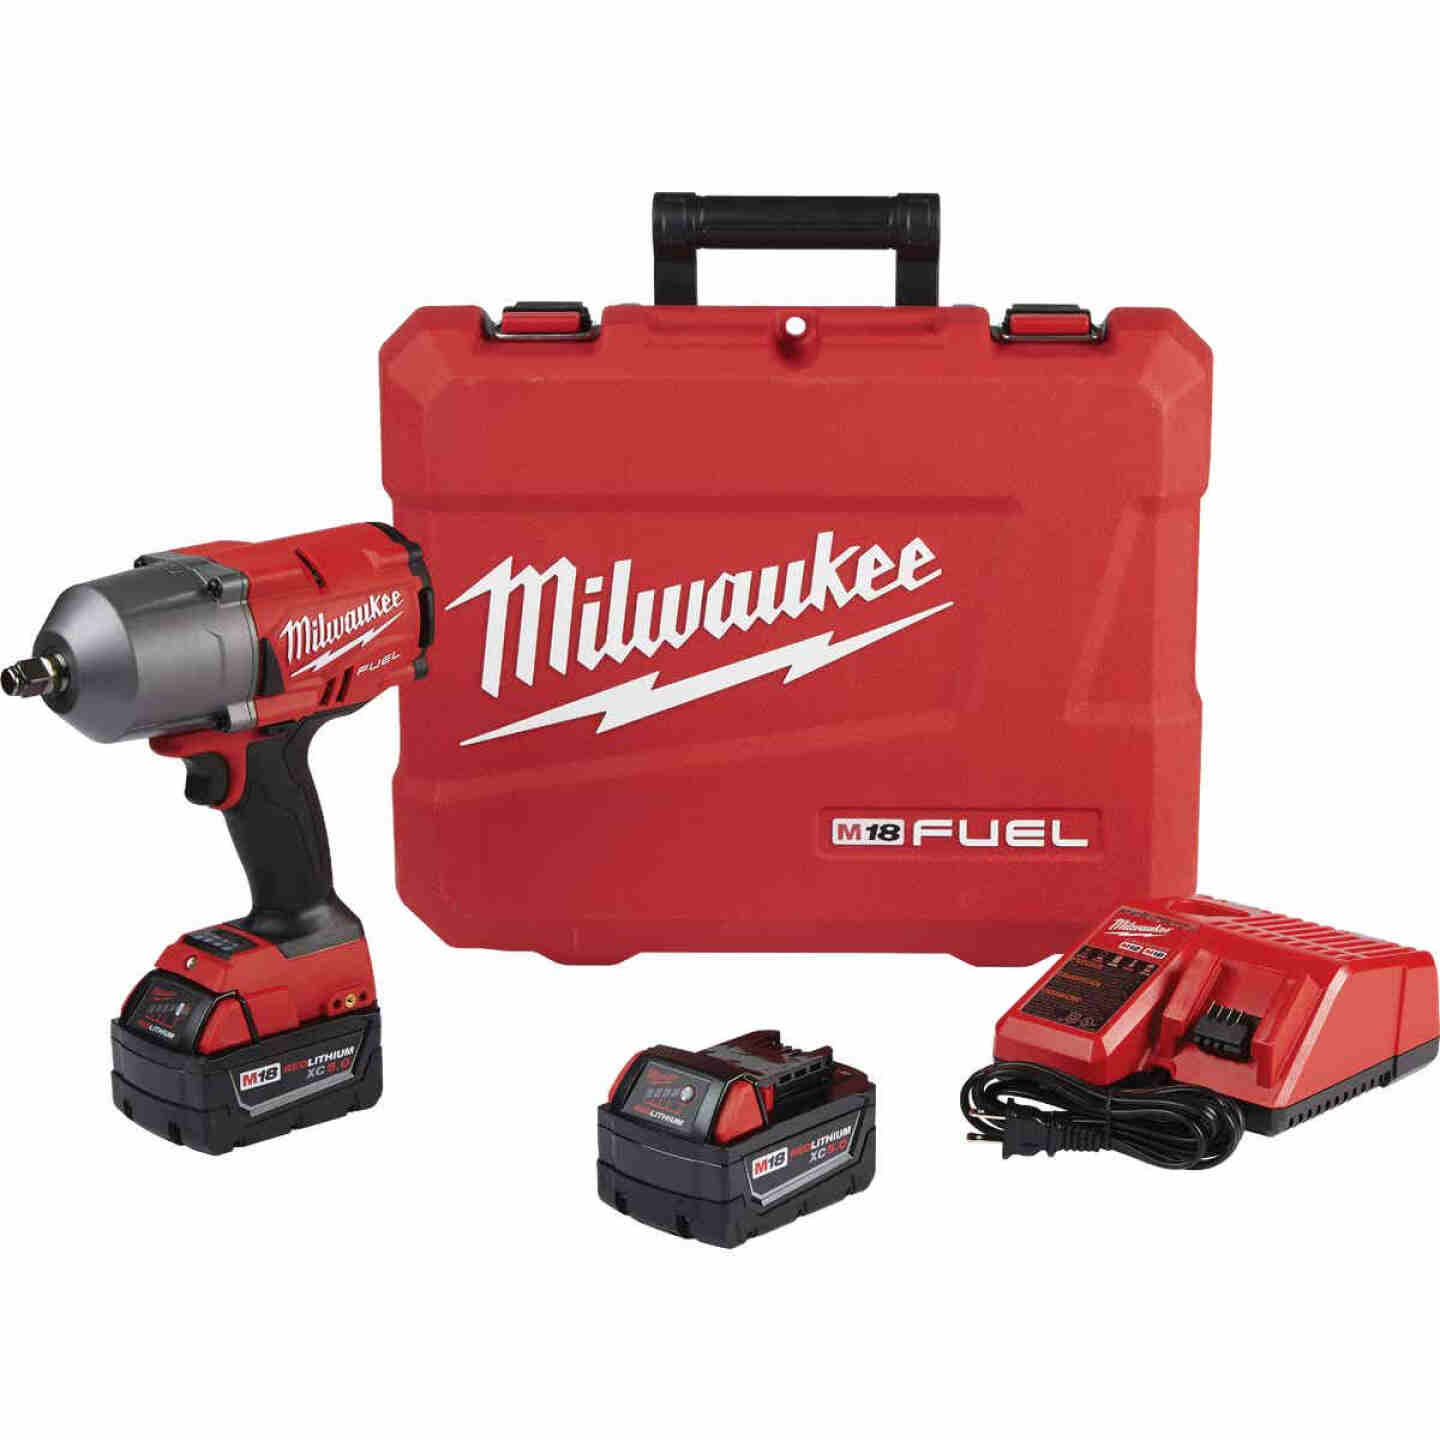 Milwaukee M18 FUEL 18-Volt Lithium-Ion Brushless 1/2 In. High Torque Cordless Impact Wrench Kit with Friction Ring Kit Image 1